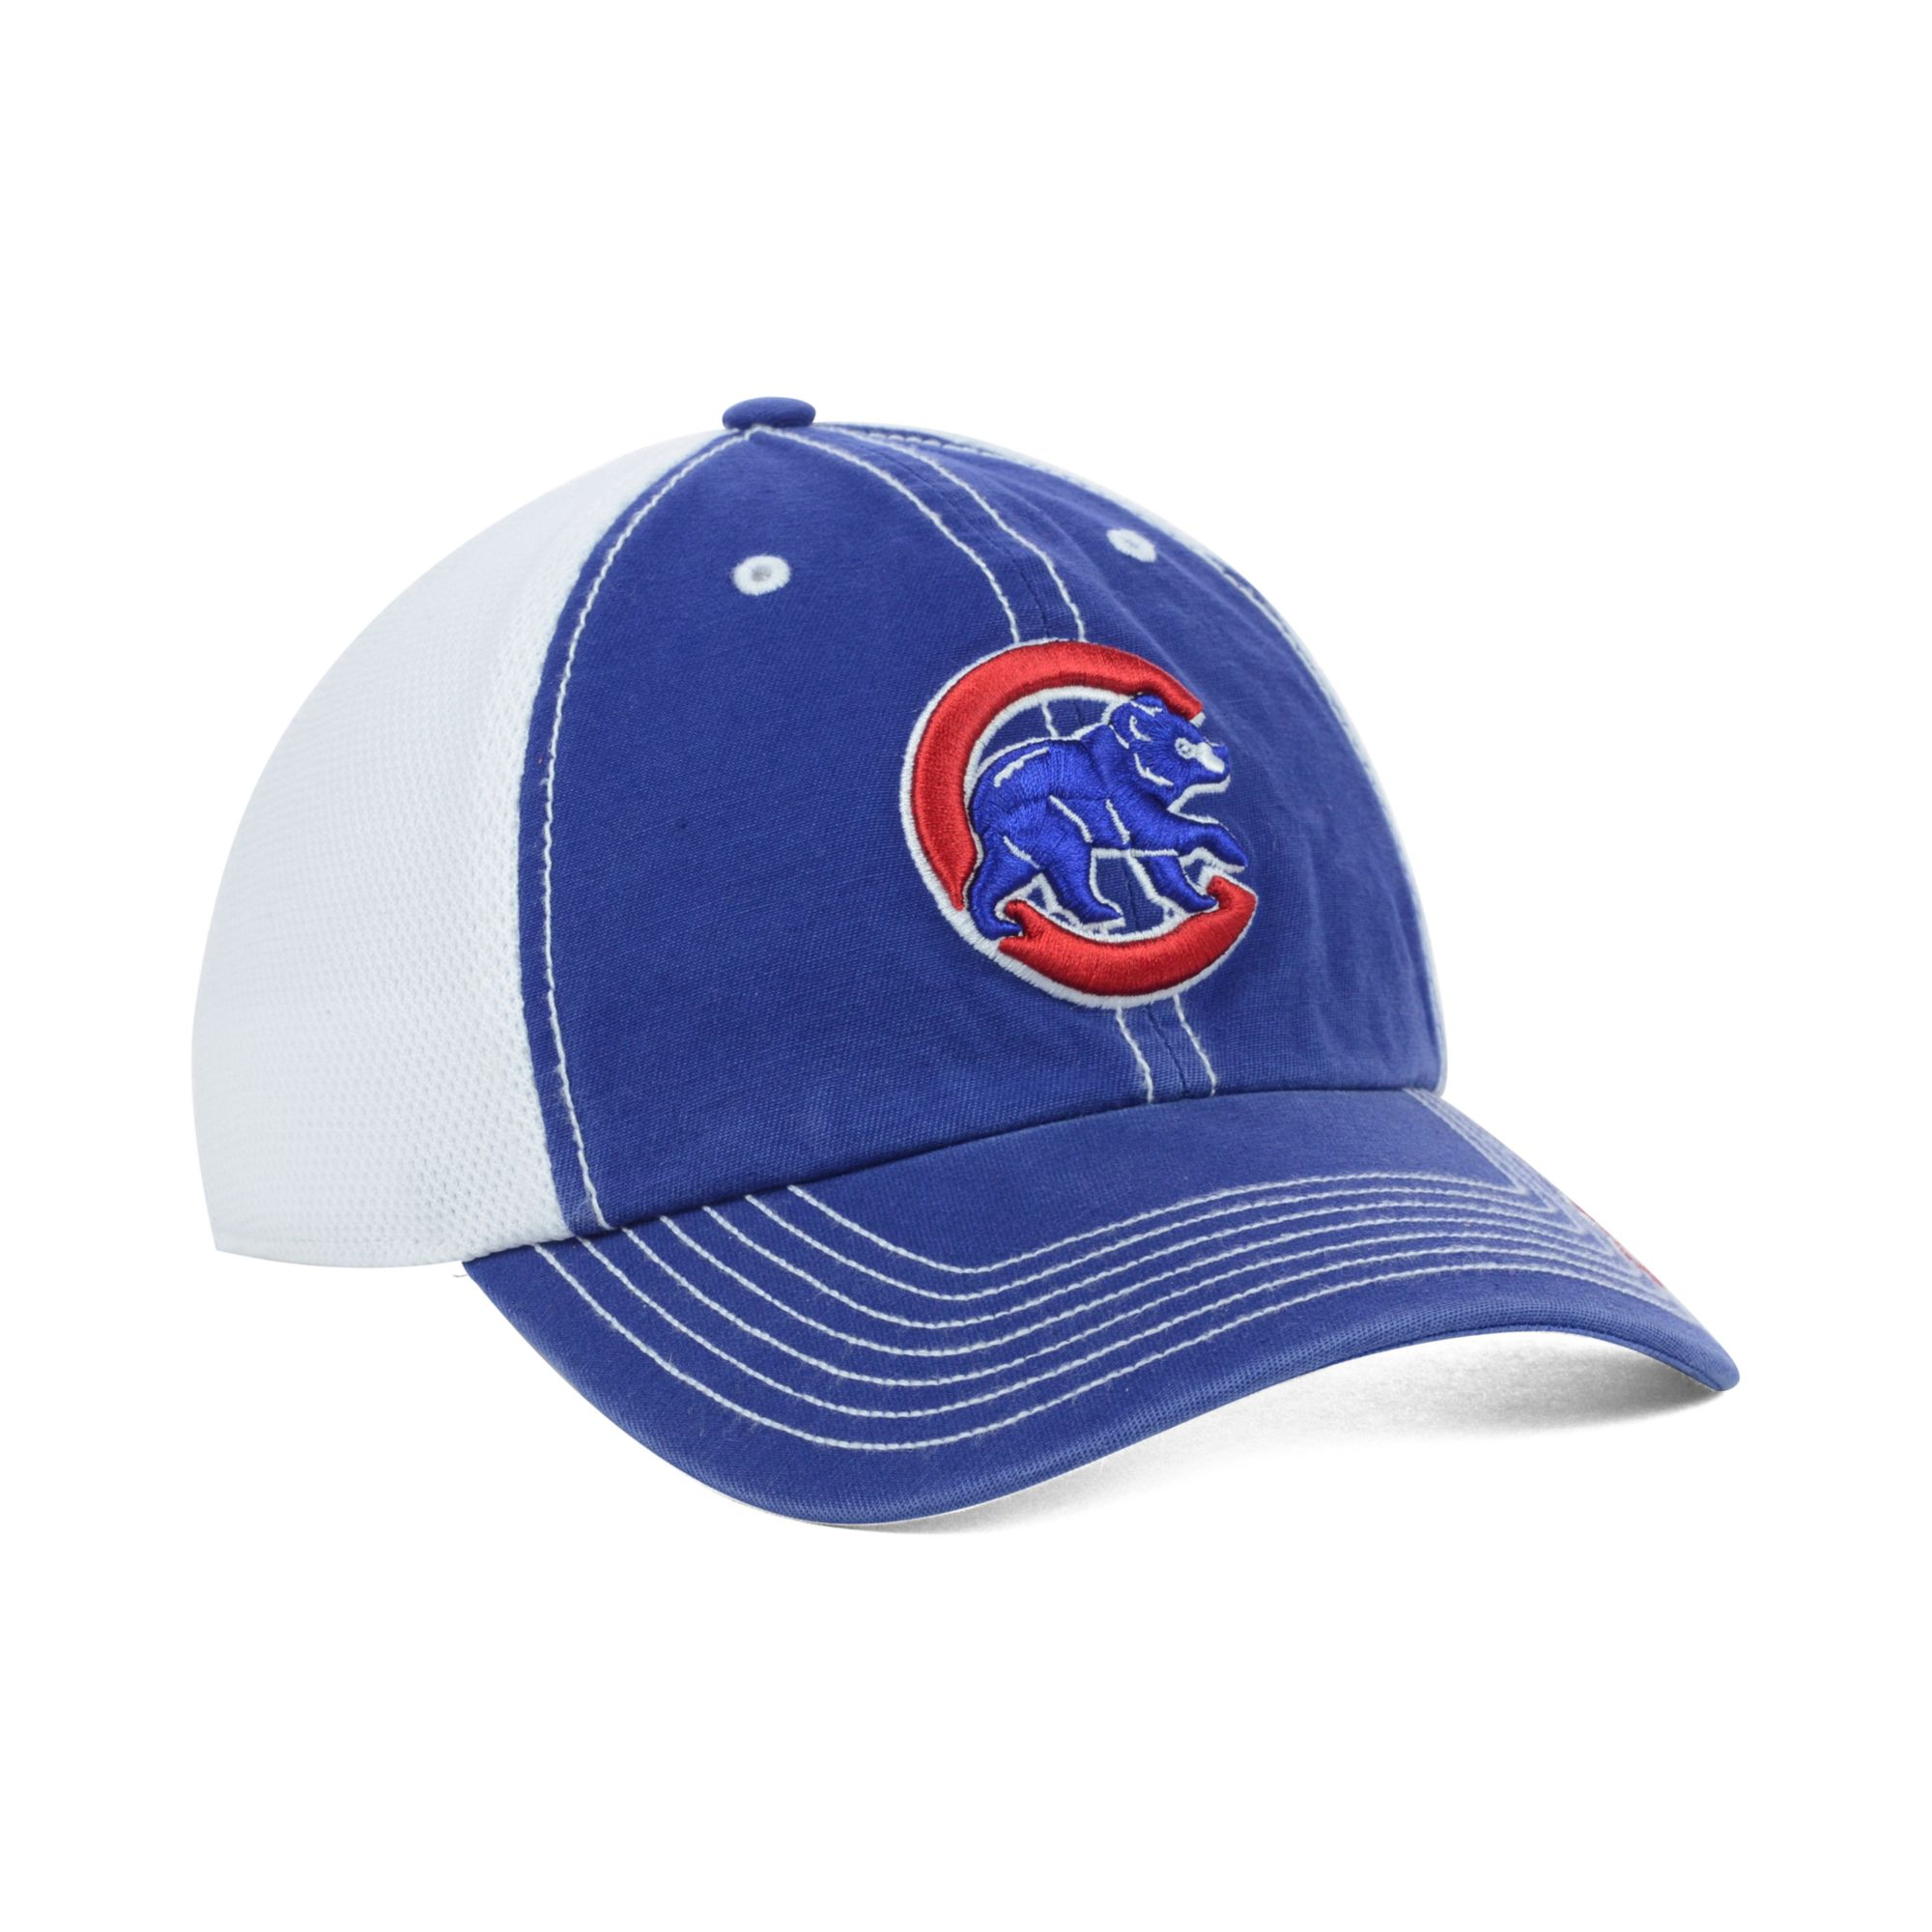 separation shoes 5ca58 3a637 order mlb chicago cubs 03947 mvp cap 9bd2e a78b6  new zealand lyst 47 brand chicago  cubs mlb ripley cap in blue for men 8d66c 9c841